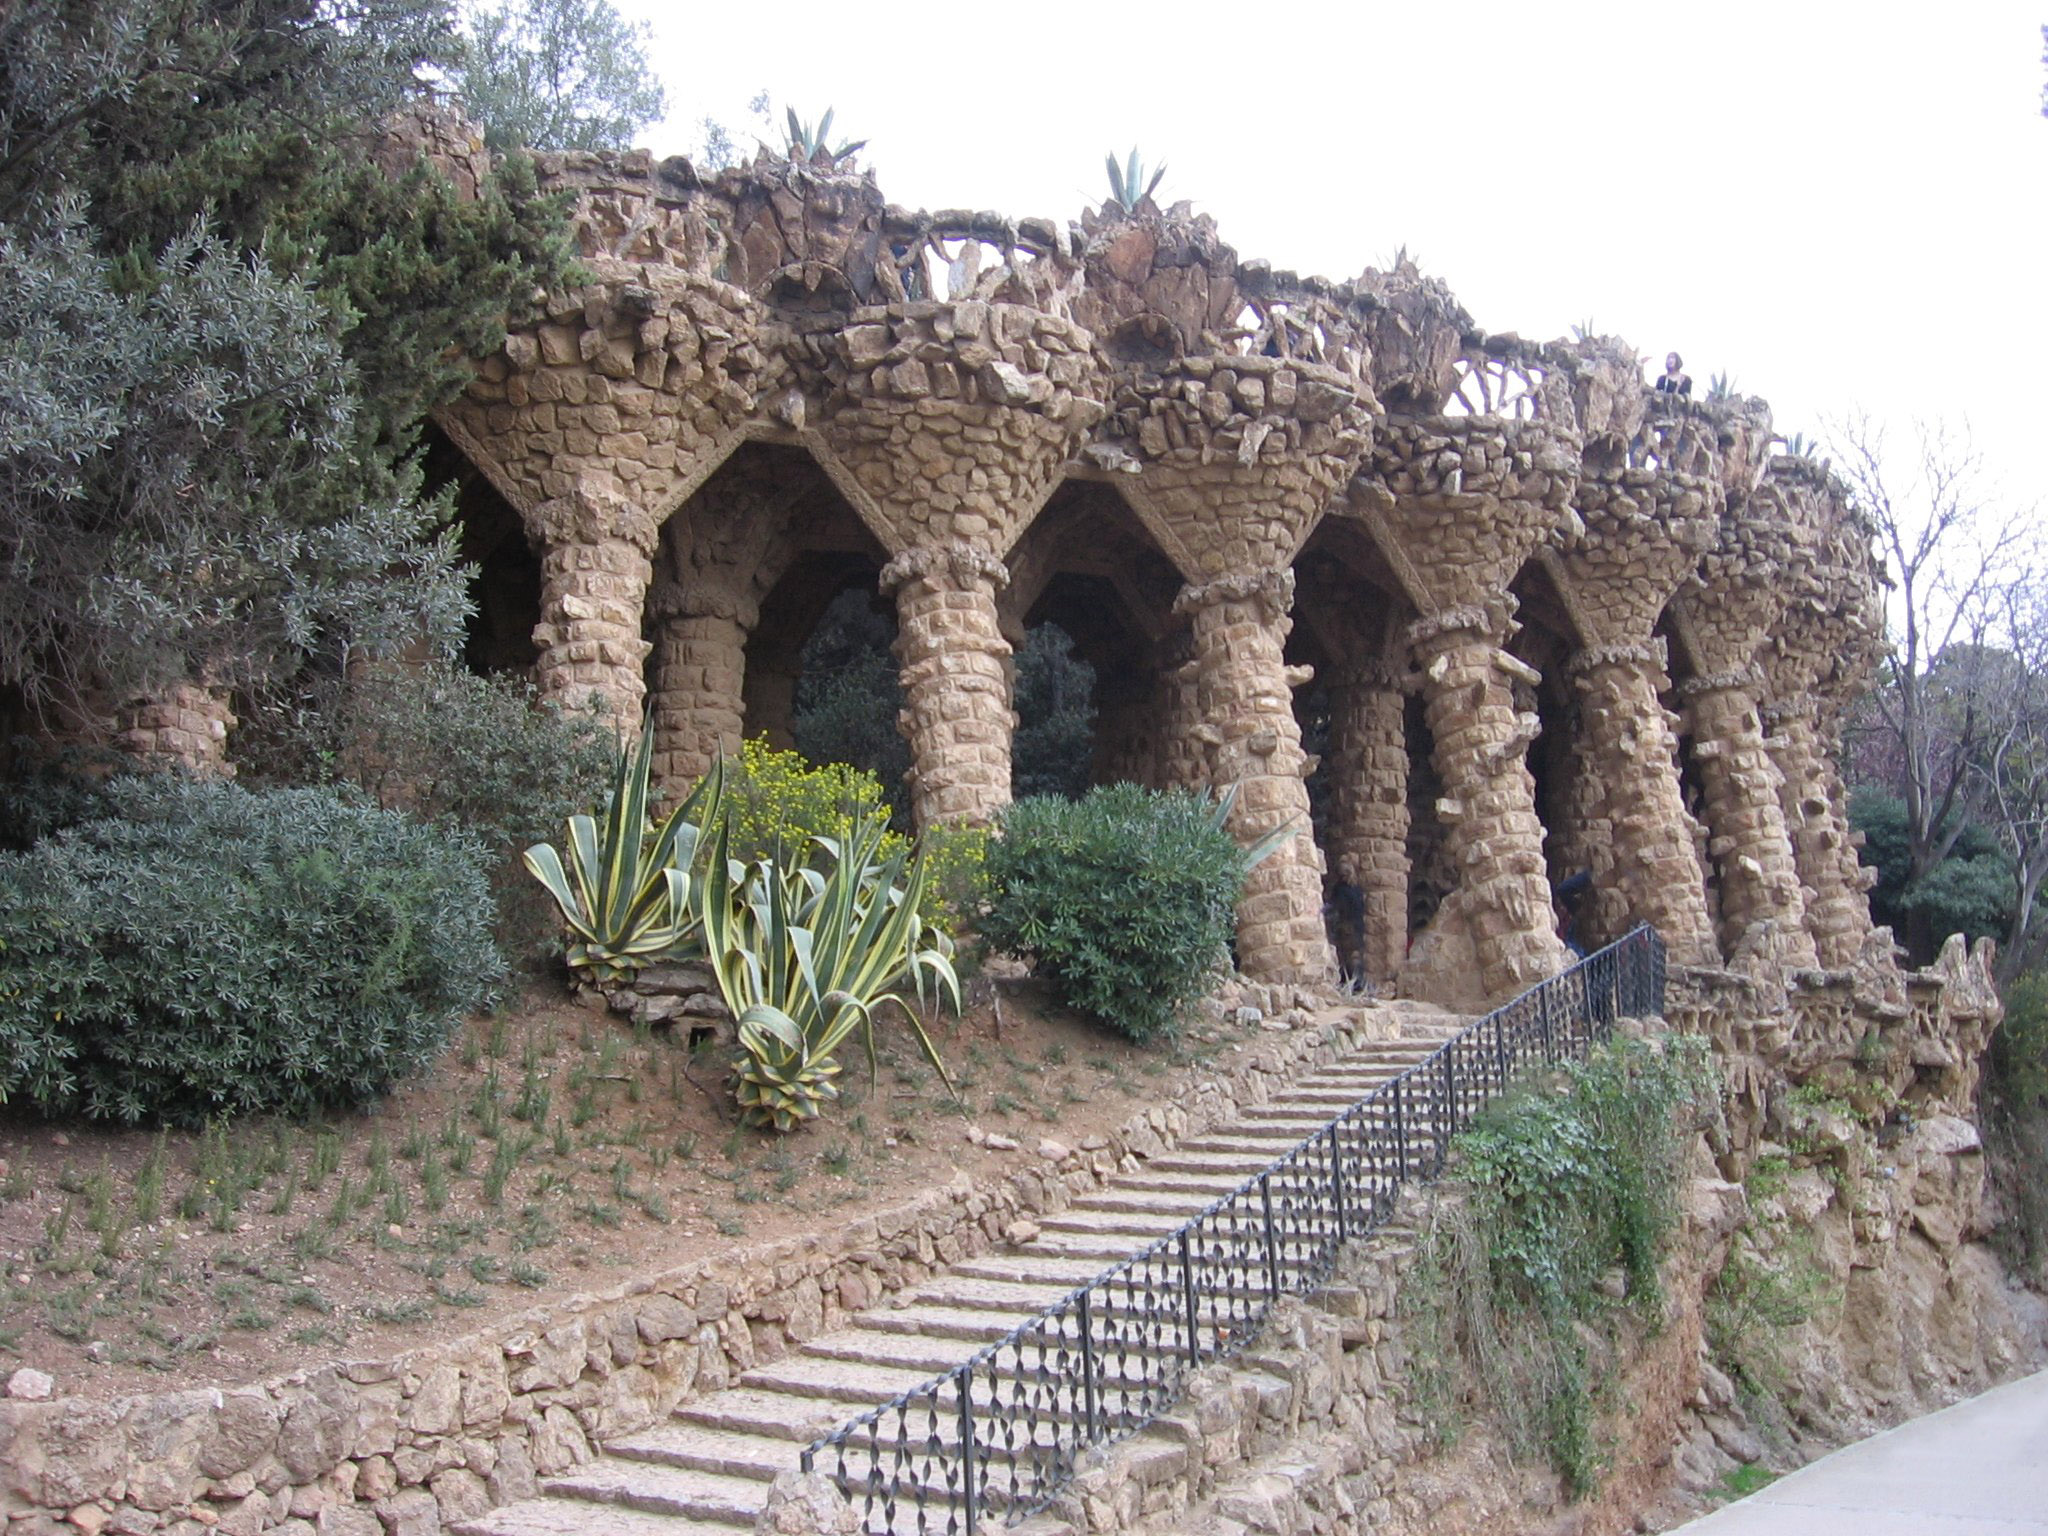 File:Park Güell - Viaducto.jpg - Wikimedia Commons